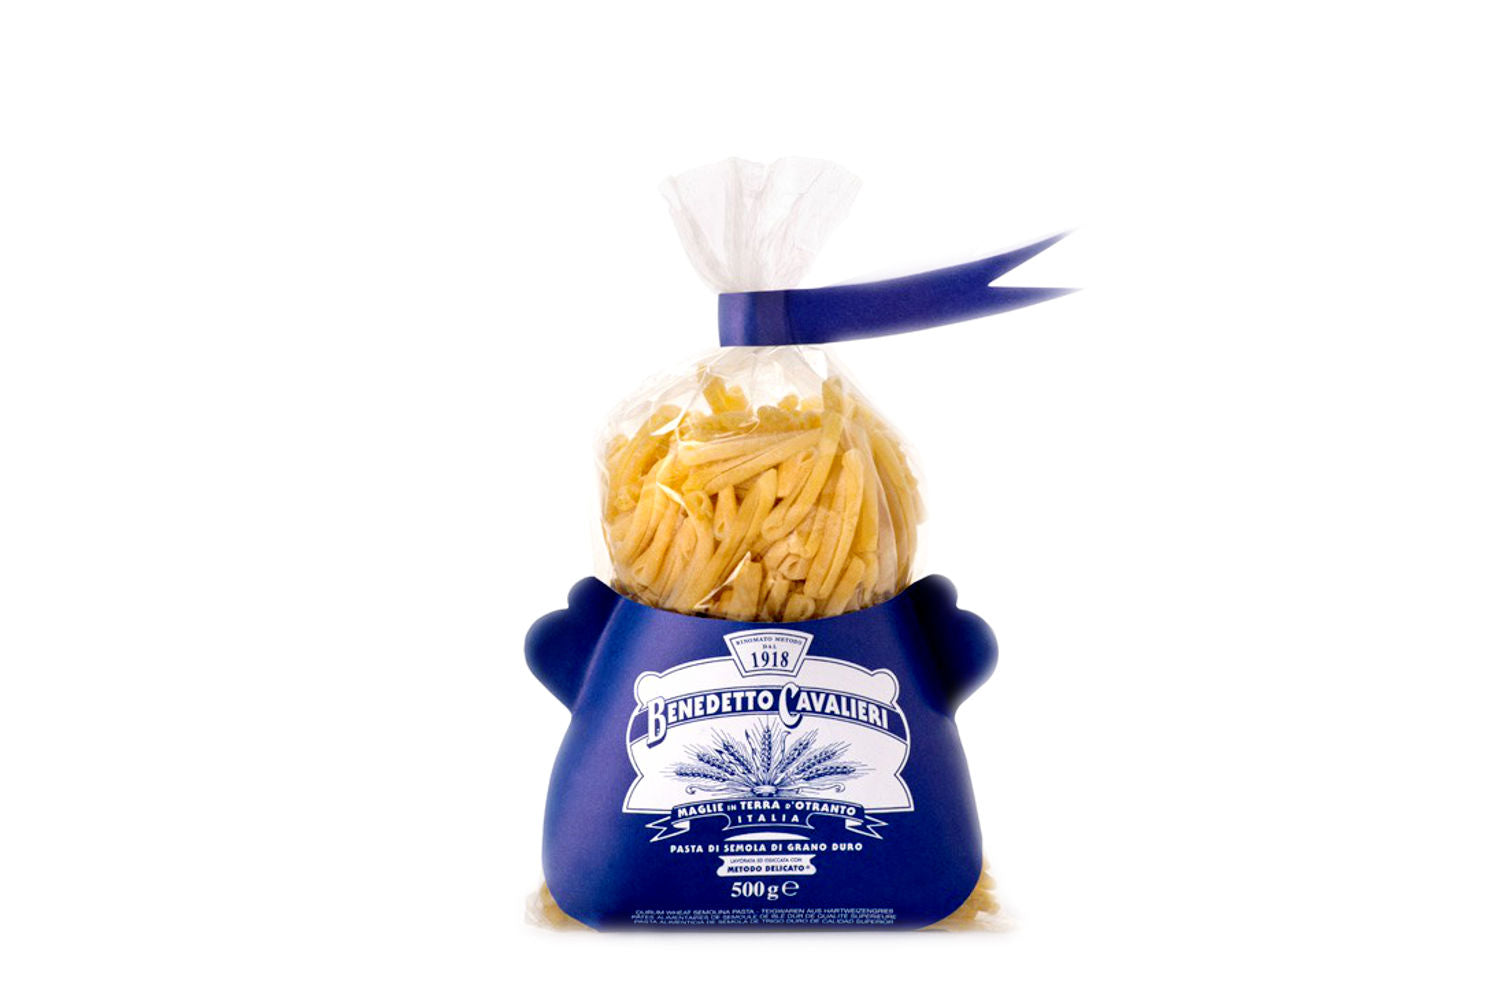 Benedetto Cavalieri Caserecci Italian Pasta 500g | the Red Beetle